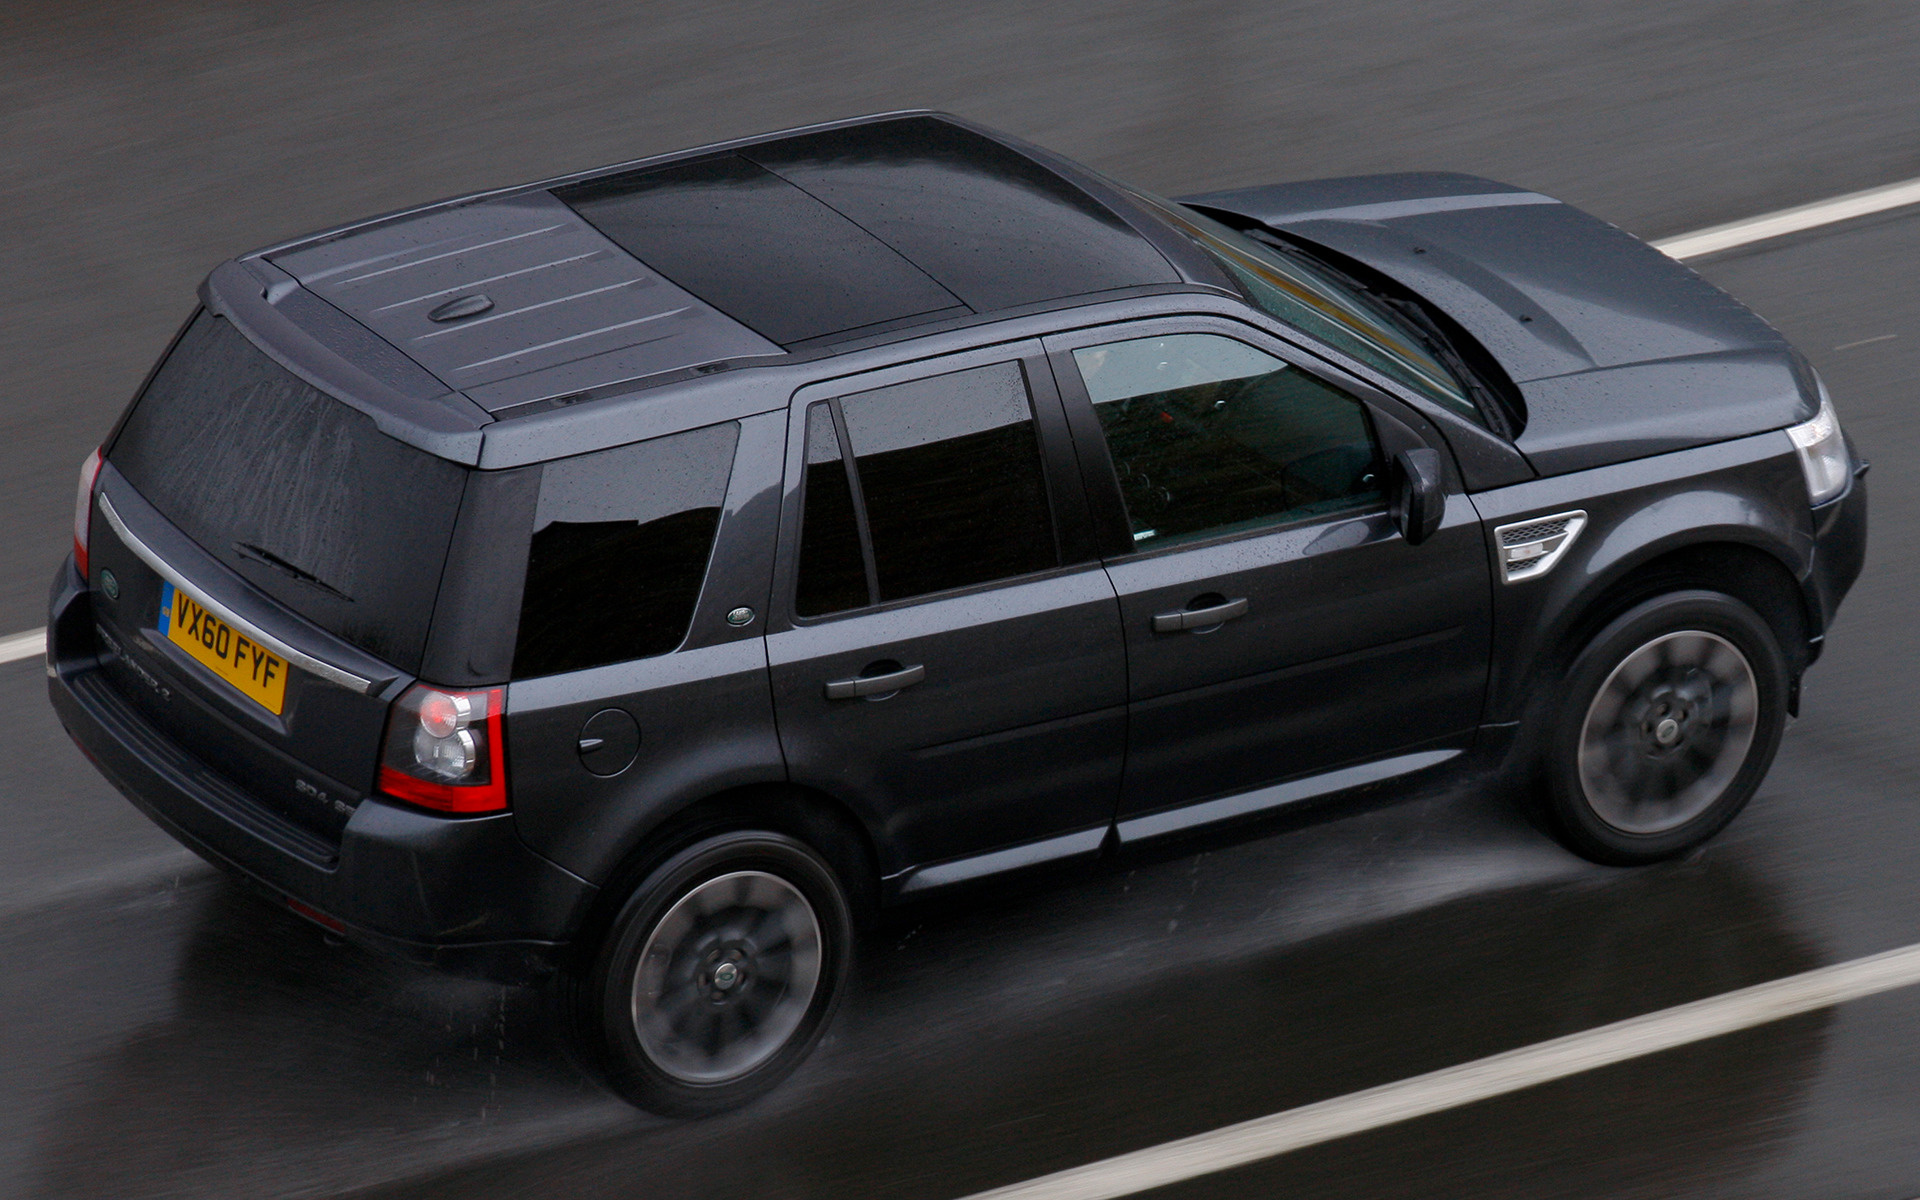 Land Rover Freelander 2 SE 2010 Wallpapers and HD Car Pixel